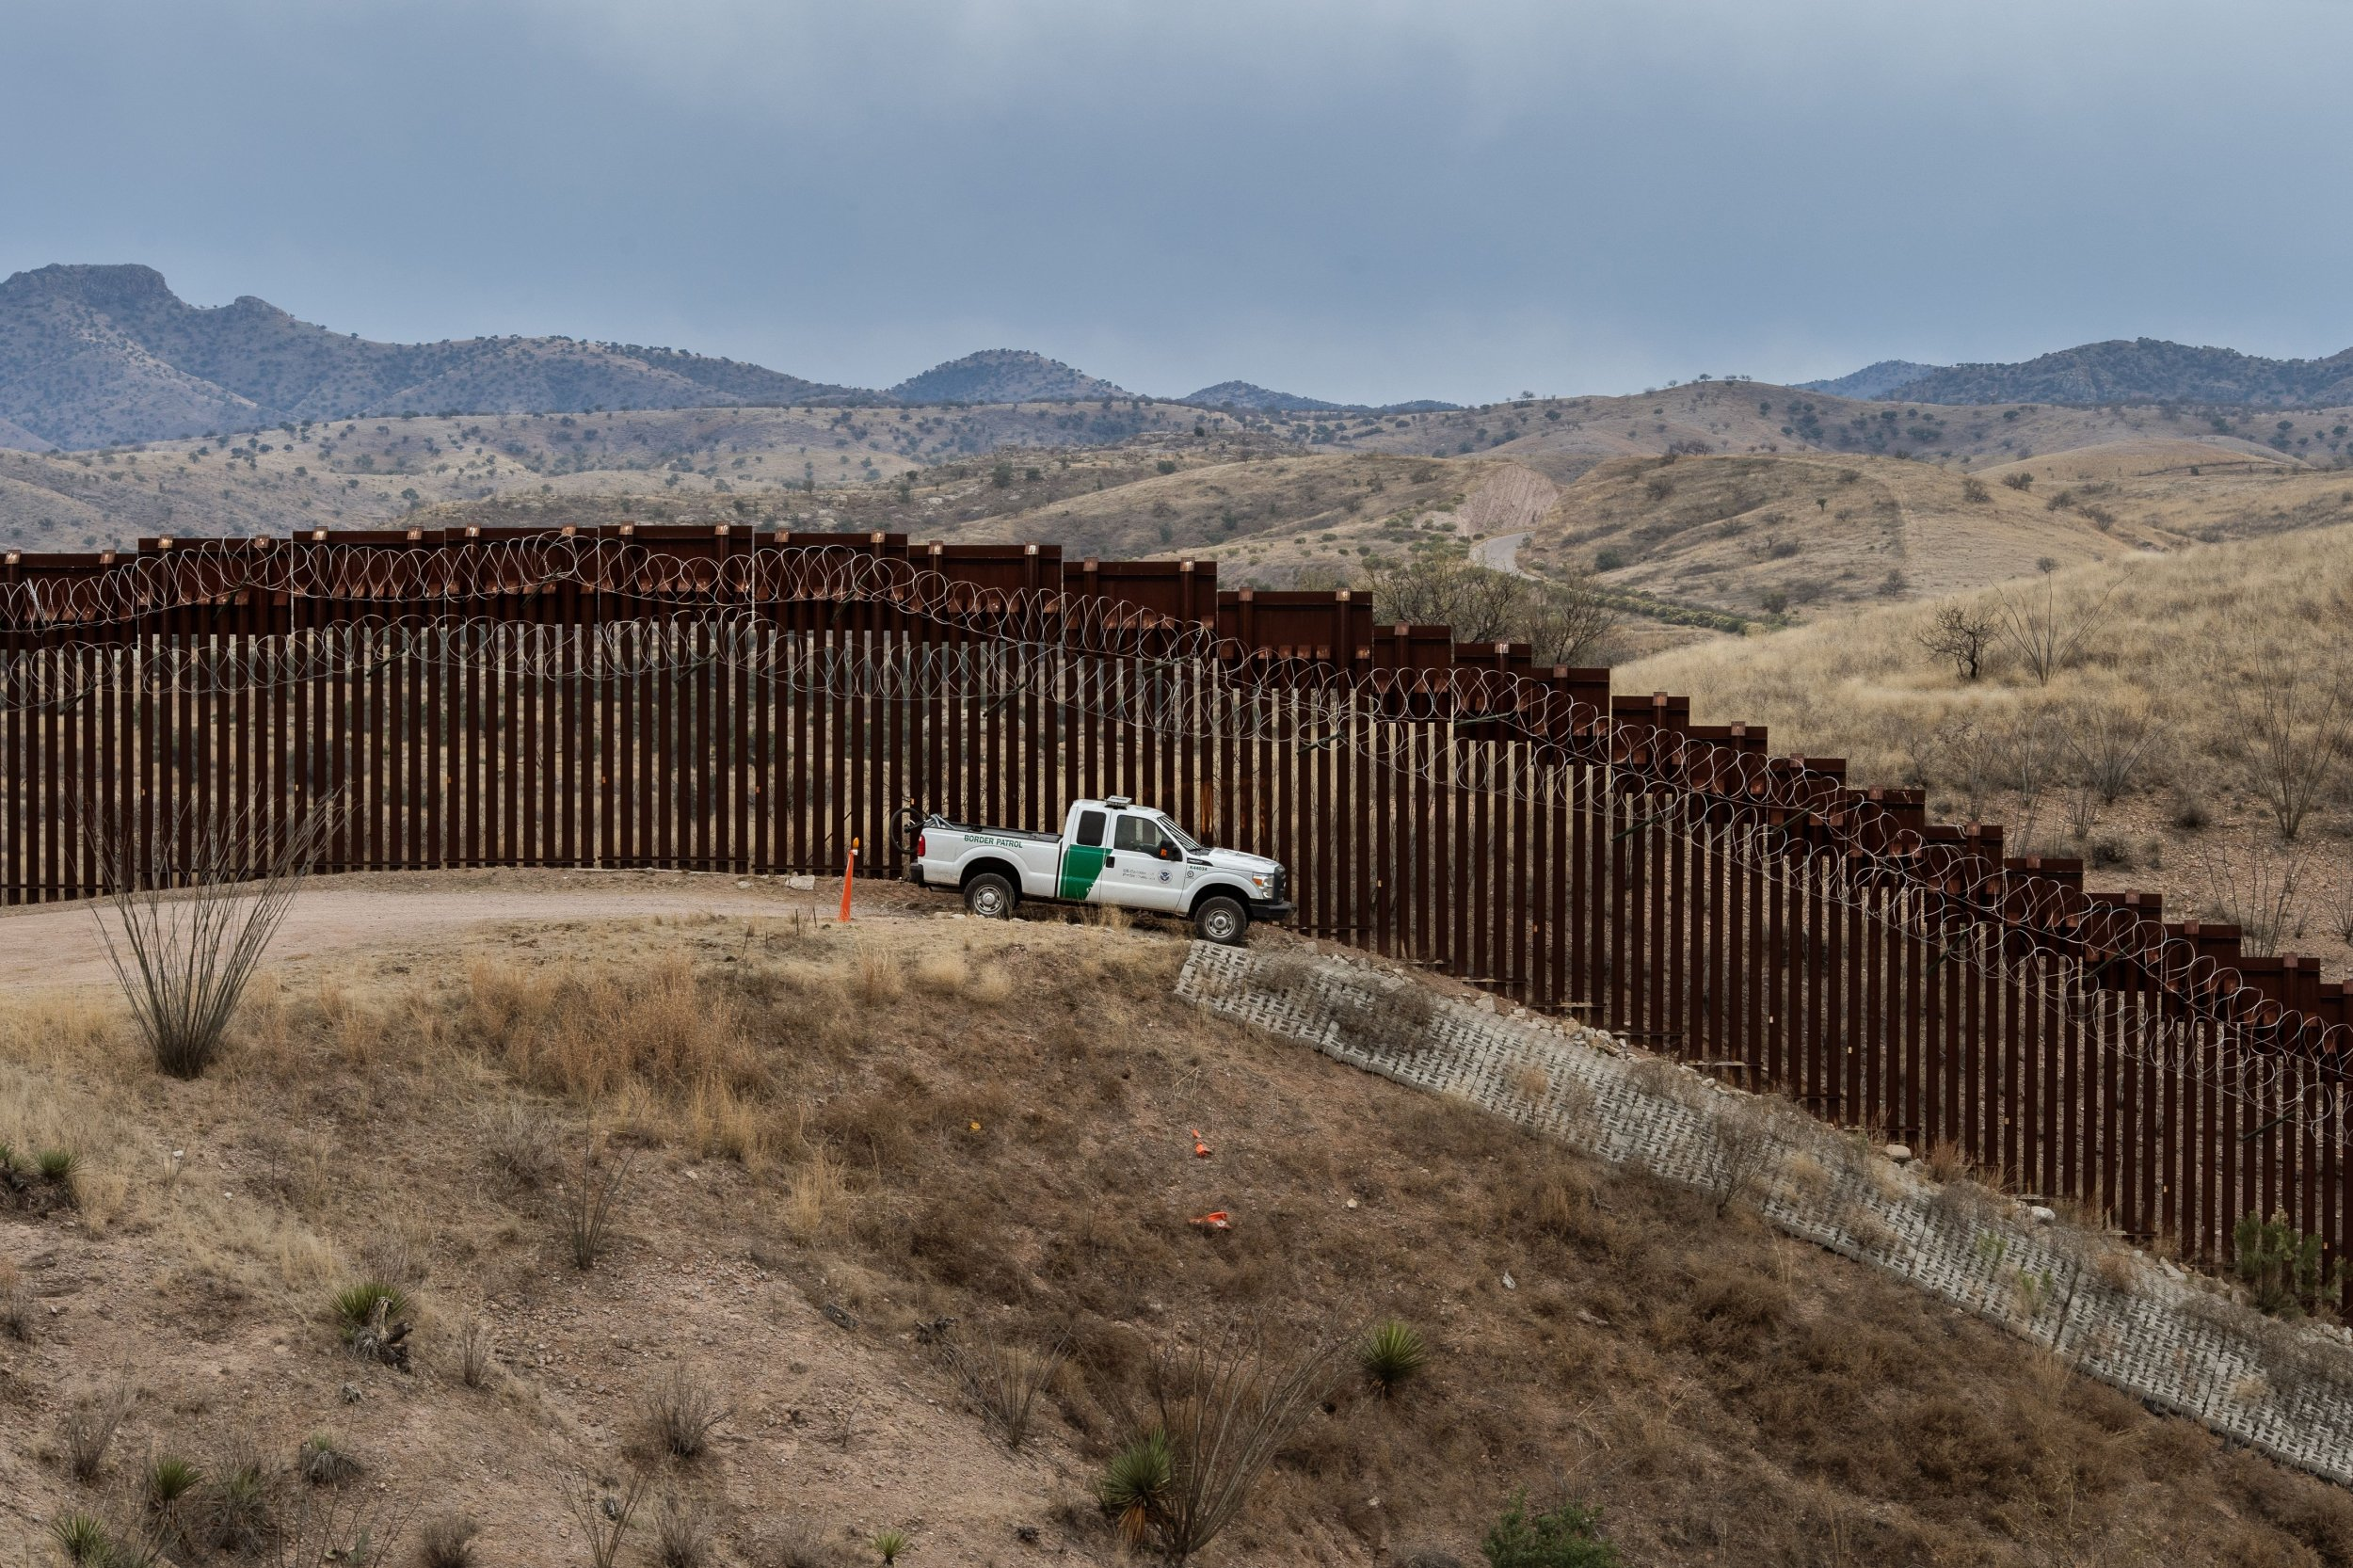 Fifth migrant child dies after detention by US border agents